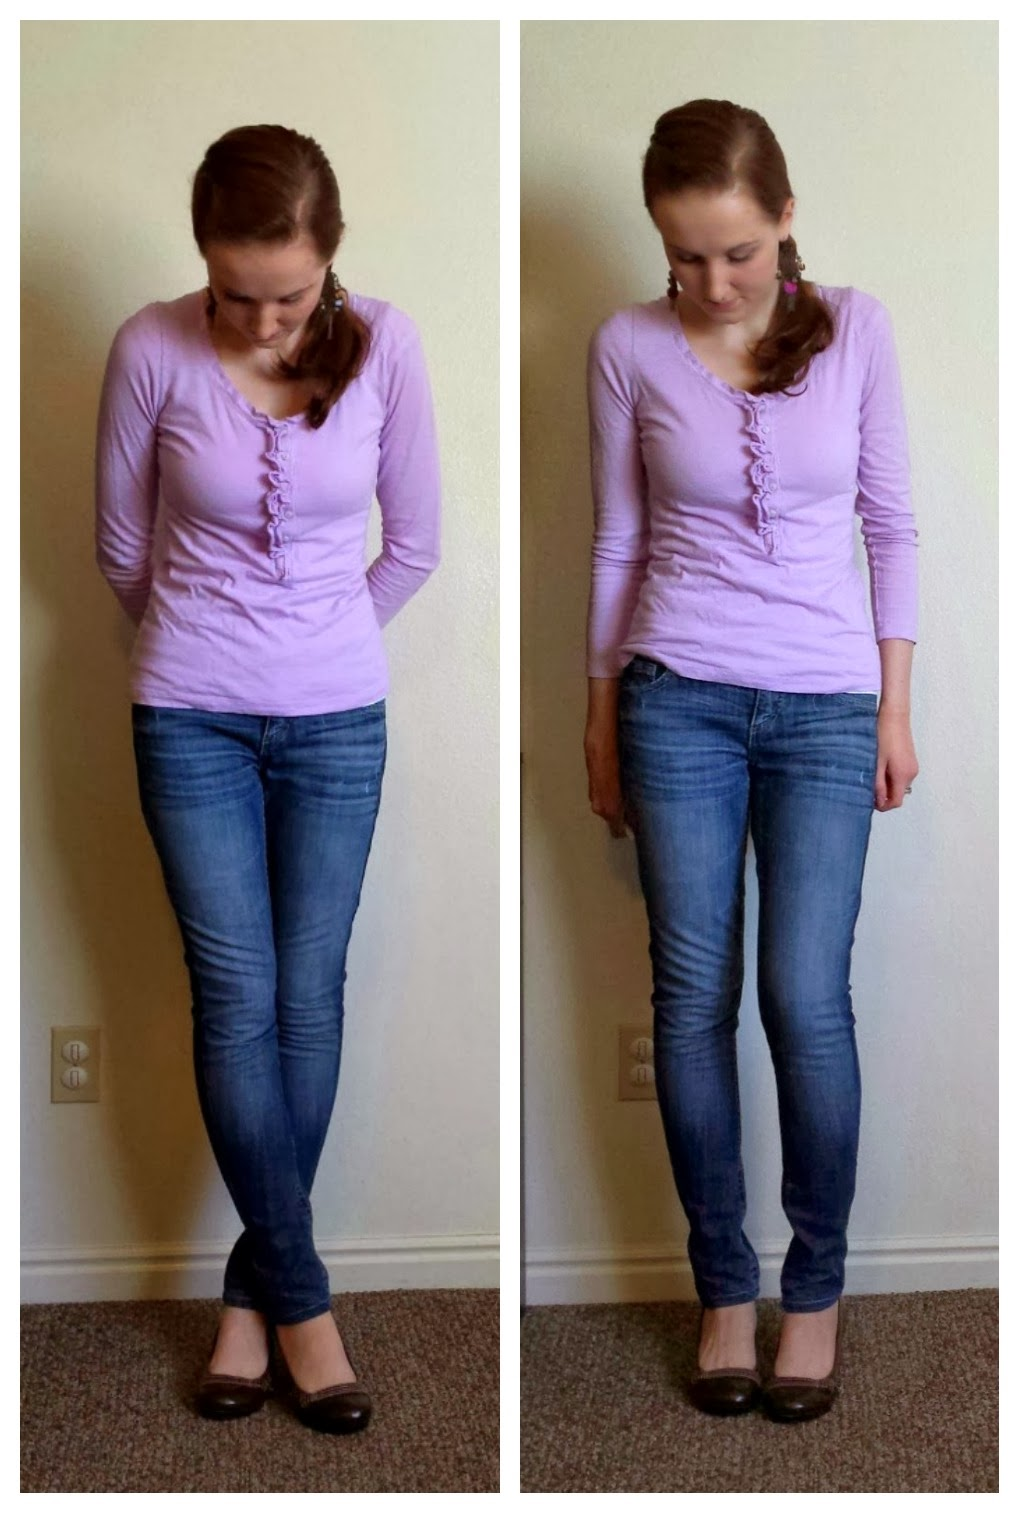 skinny jean refashion, flare to skinny jeans, diy skinny jeans, pants refashion, skinny jean tutorial